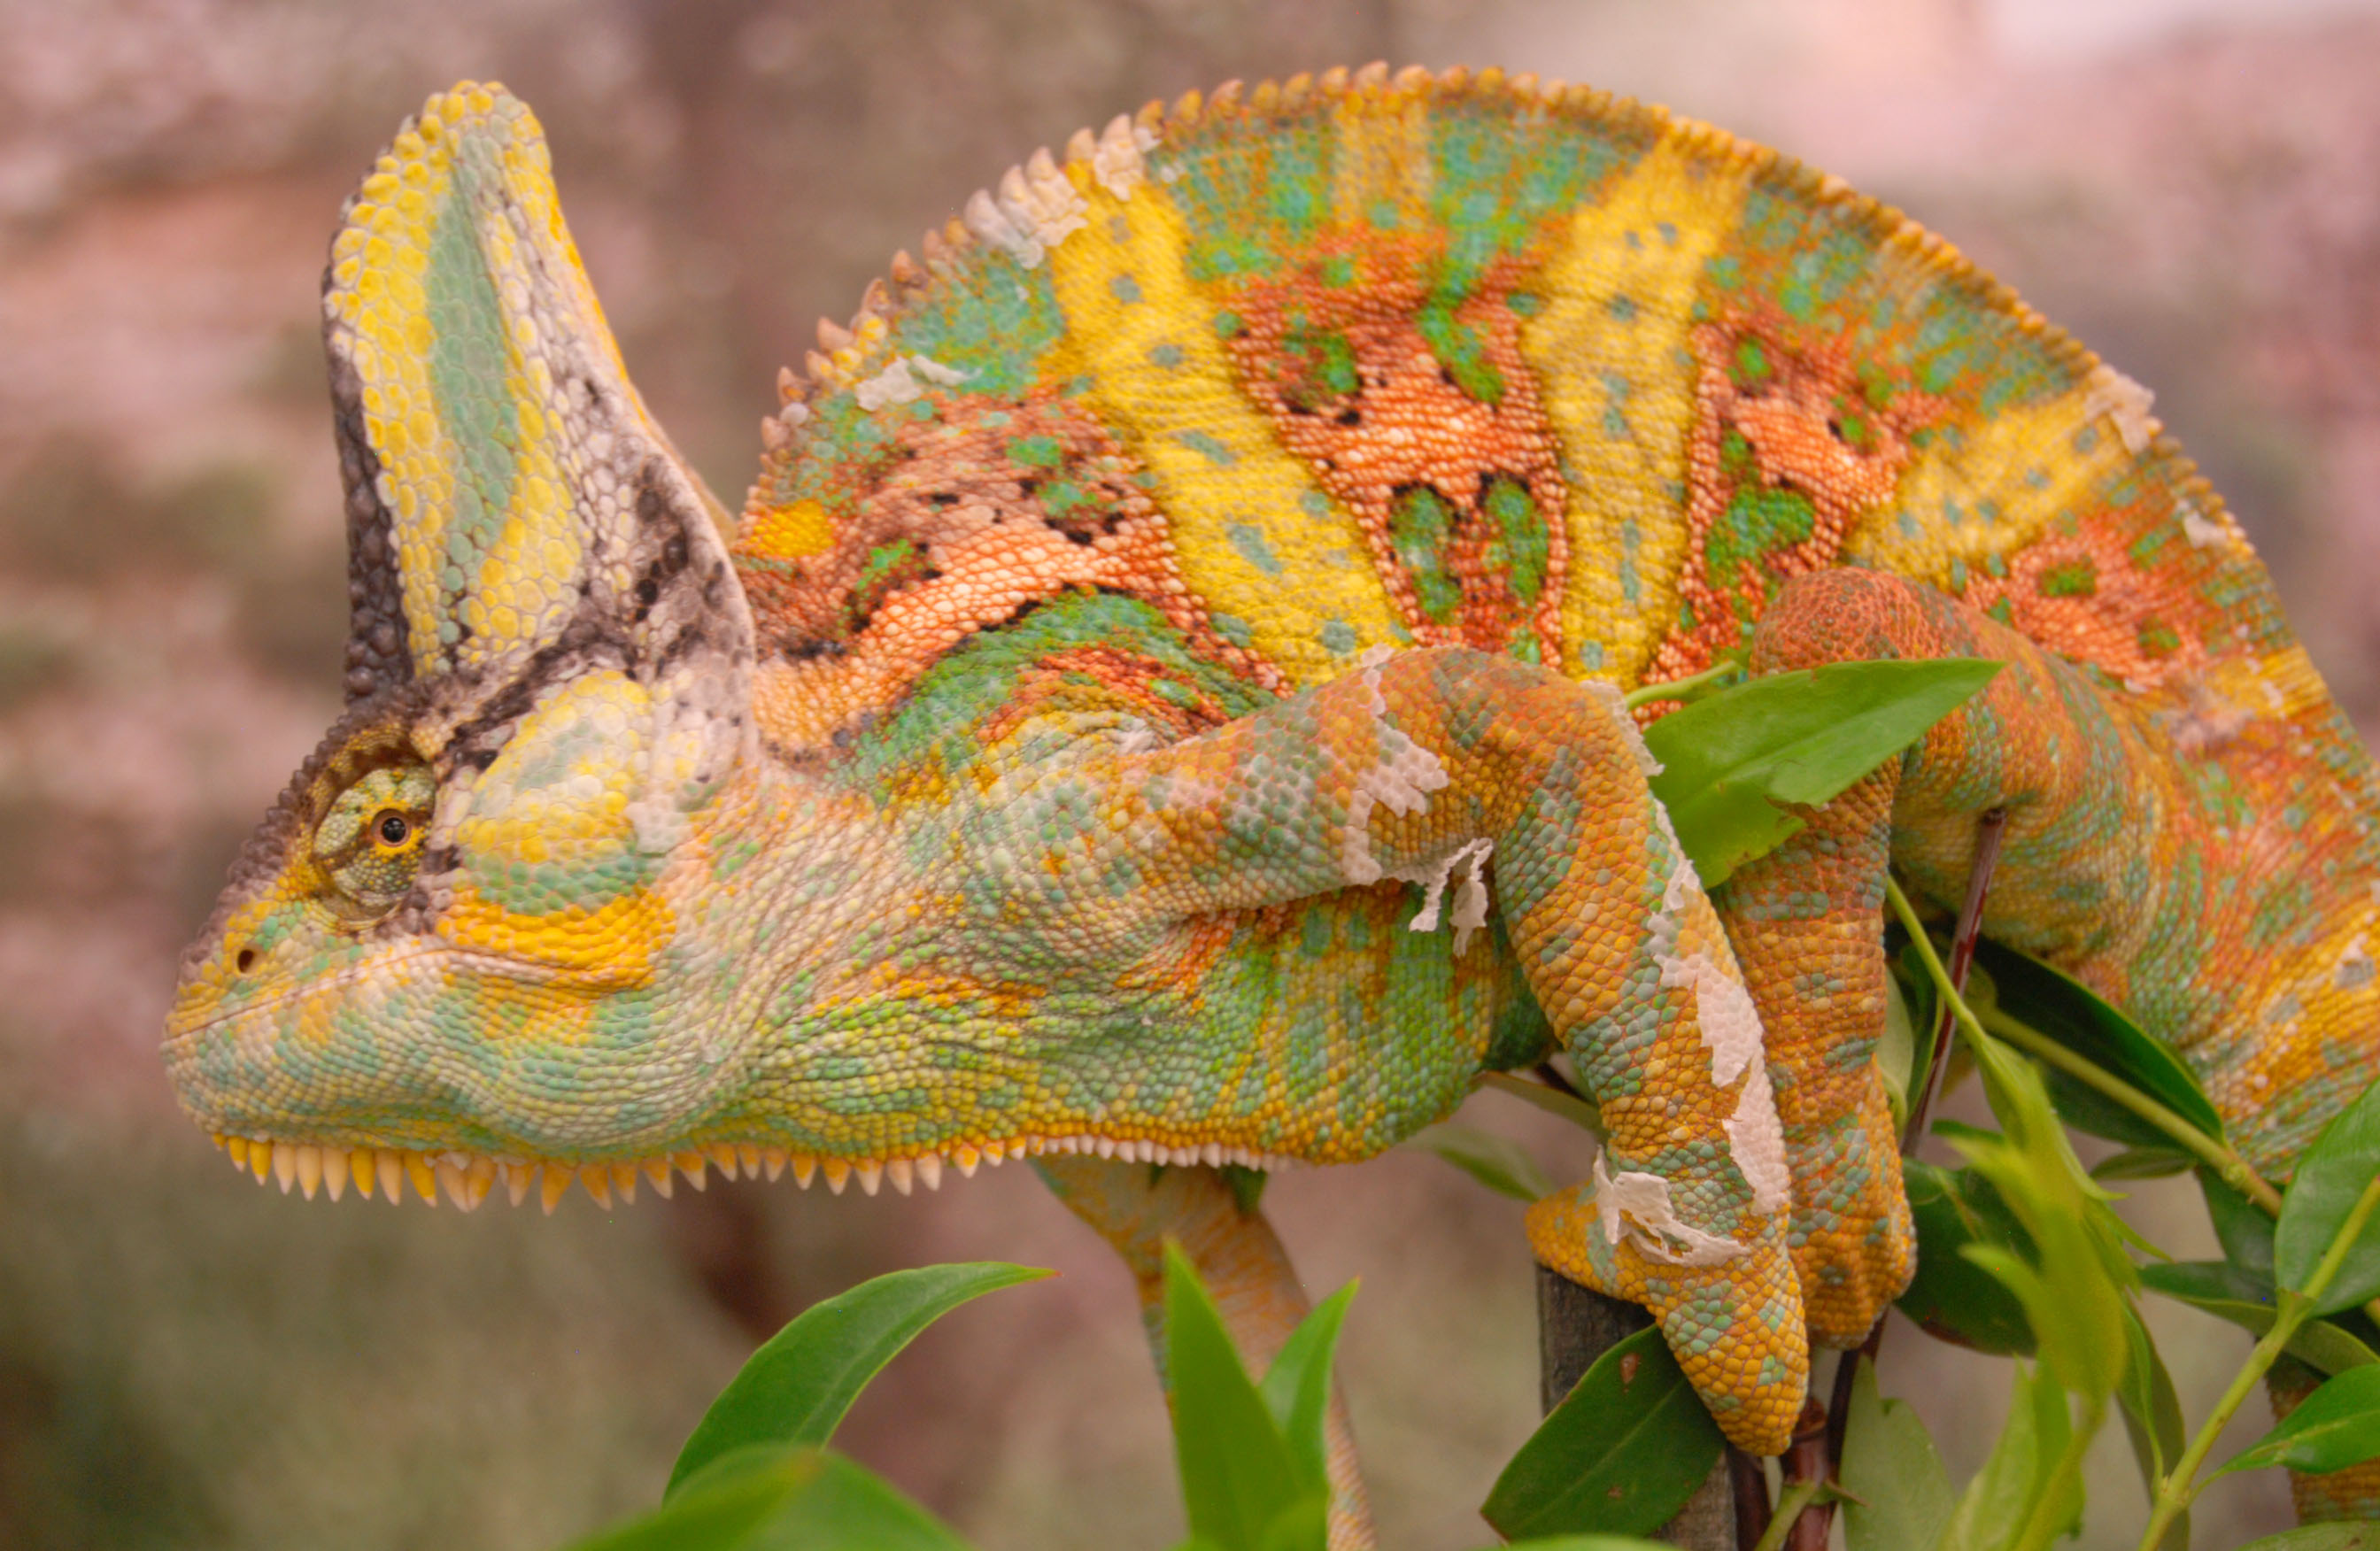 study shows male chameleons fighting prowess tied to color changing